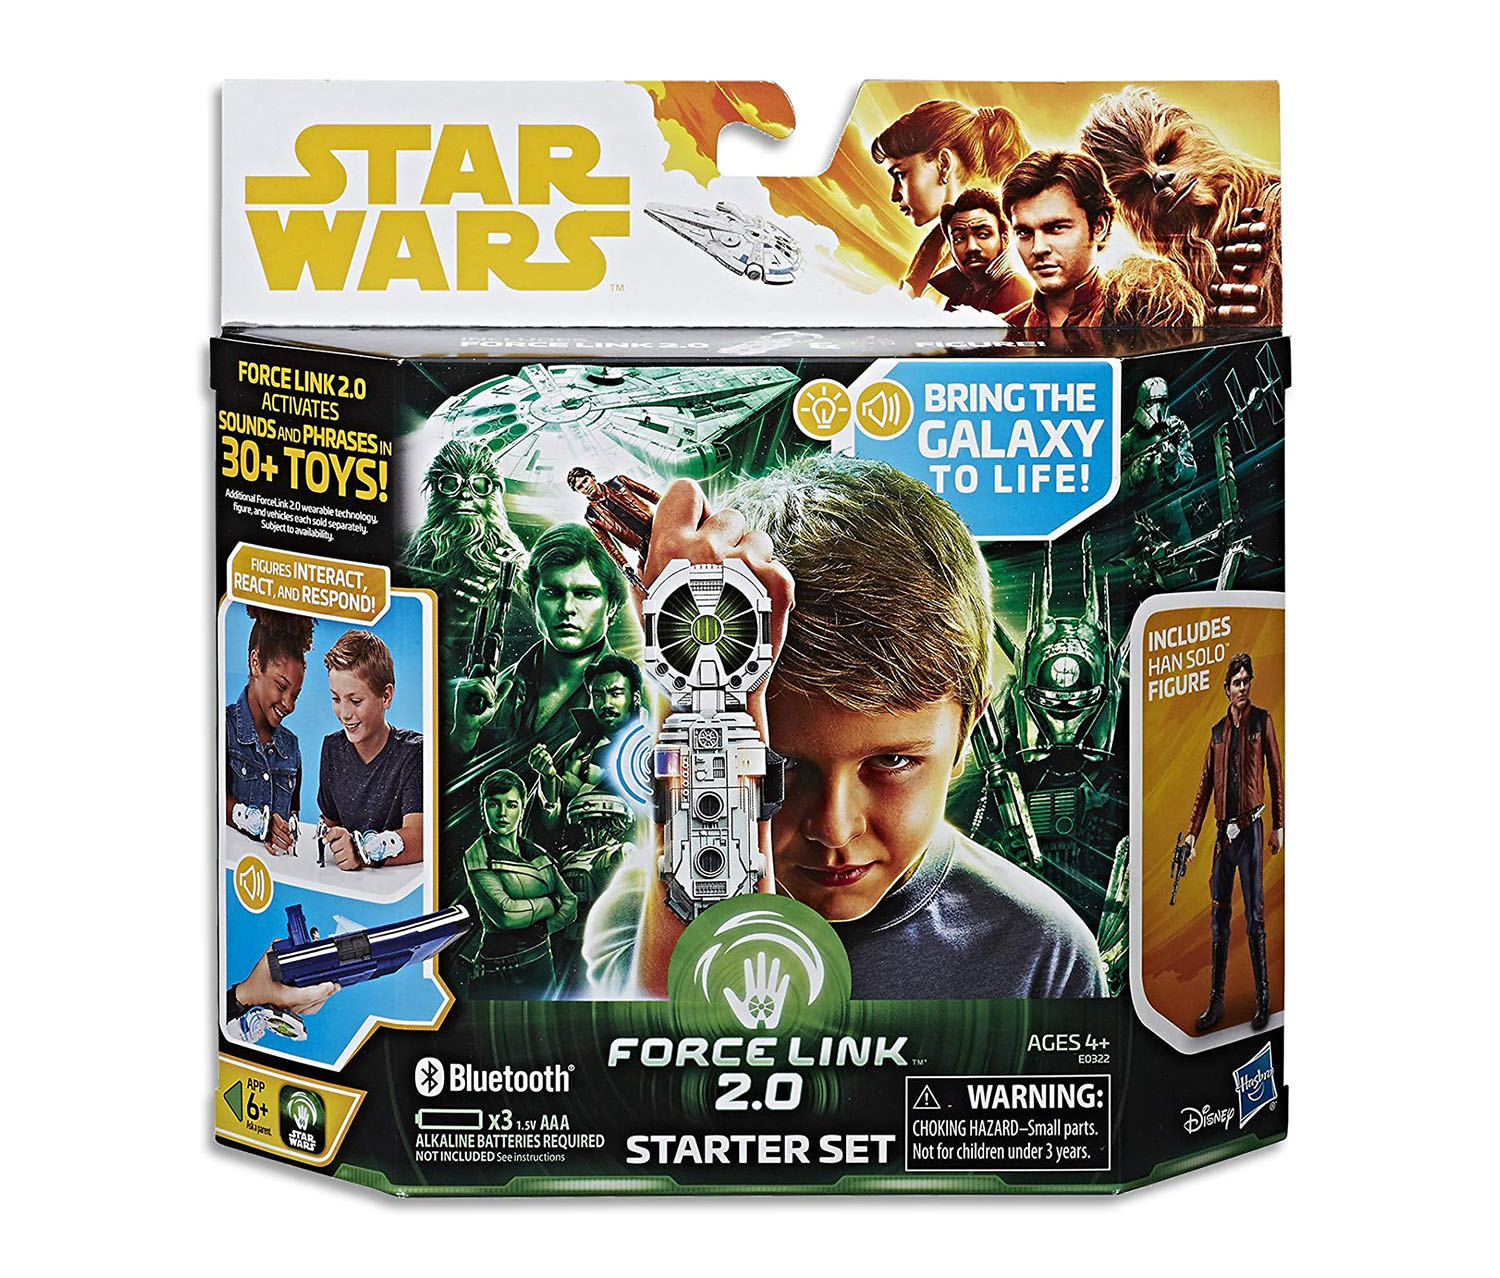 Star Wars Force Link 2.0 Starter Set including Wearable Technology, Green Combo